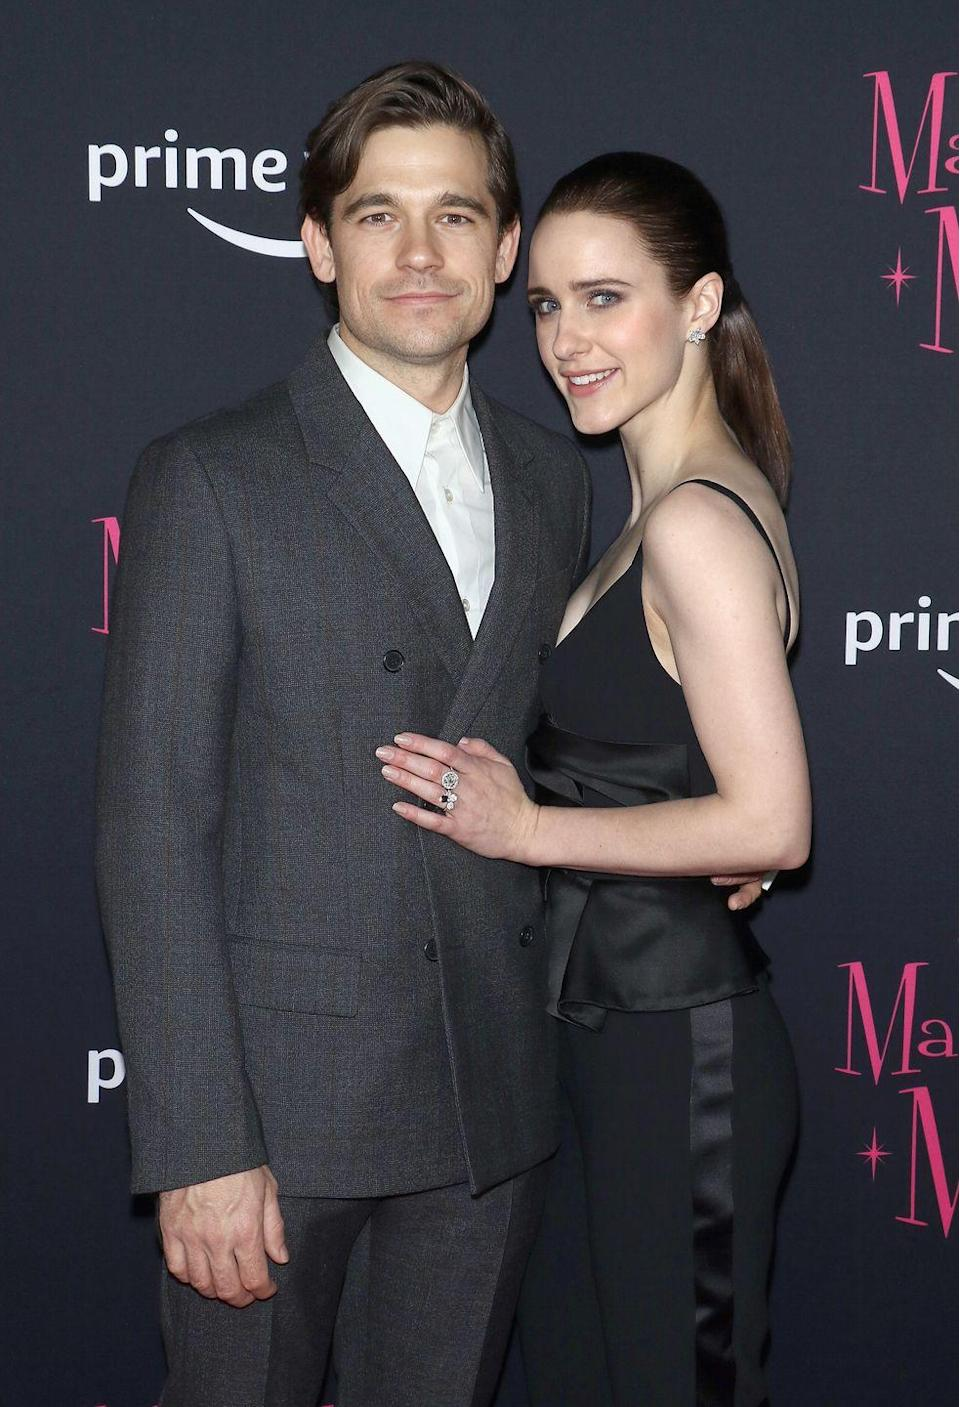 <p><strong>How long they've been together: </strong>Although the stars have kept mum about how they met, Brosnahan and Ralph were first linked in 2015. </p><p><strong>Why you forgot they're <strong>together</strong>: </strong>Brosnahan's profile has significantly grown with her success on <em>The</em> <em>Marvelous Mrs. Maisel, </em>so it wasn't surprising when reports began speculating that the longtime couple had tied the knot in 2018. What <em>was</em> surprising? That the couple had actually already been married for a long time—but they haven't revealed how long. </p>